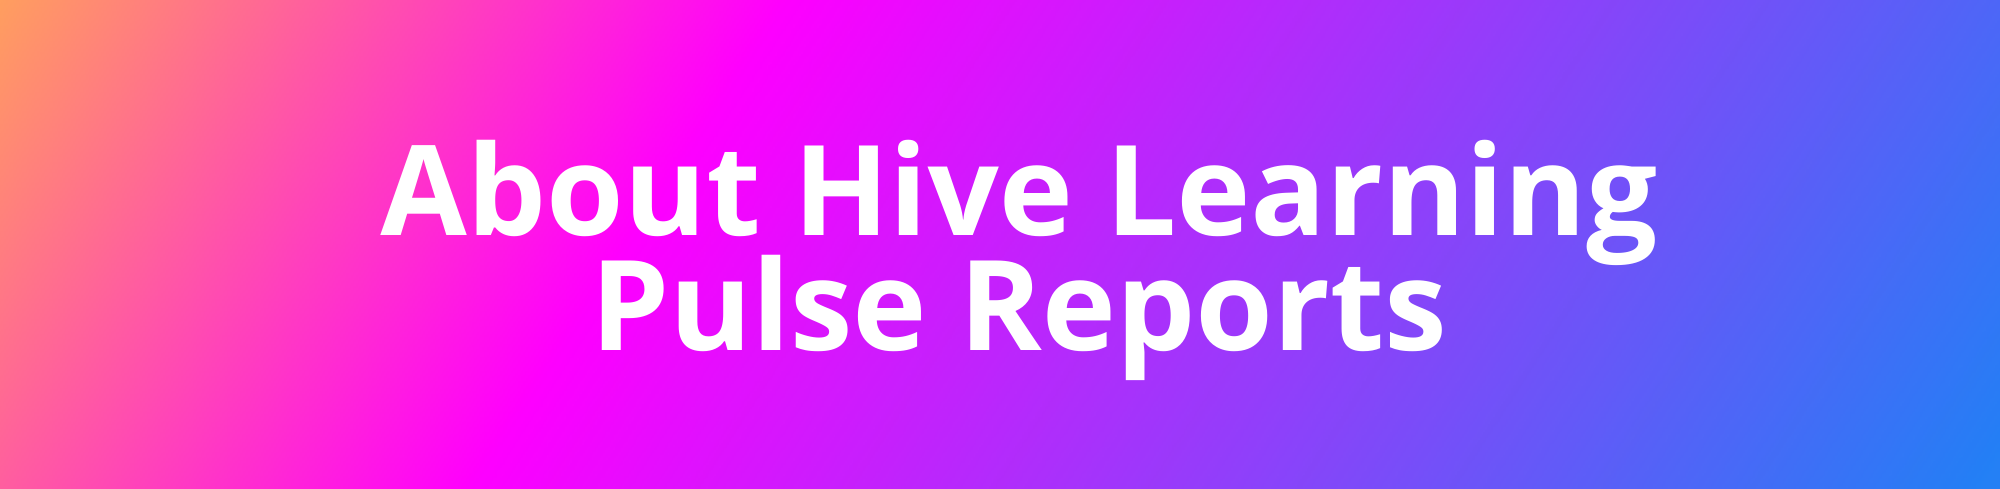 About Hive Learning Pulse Reports